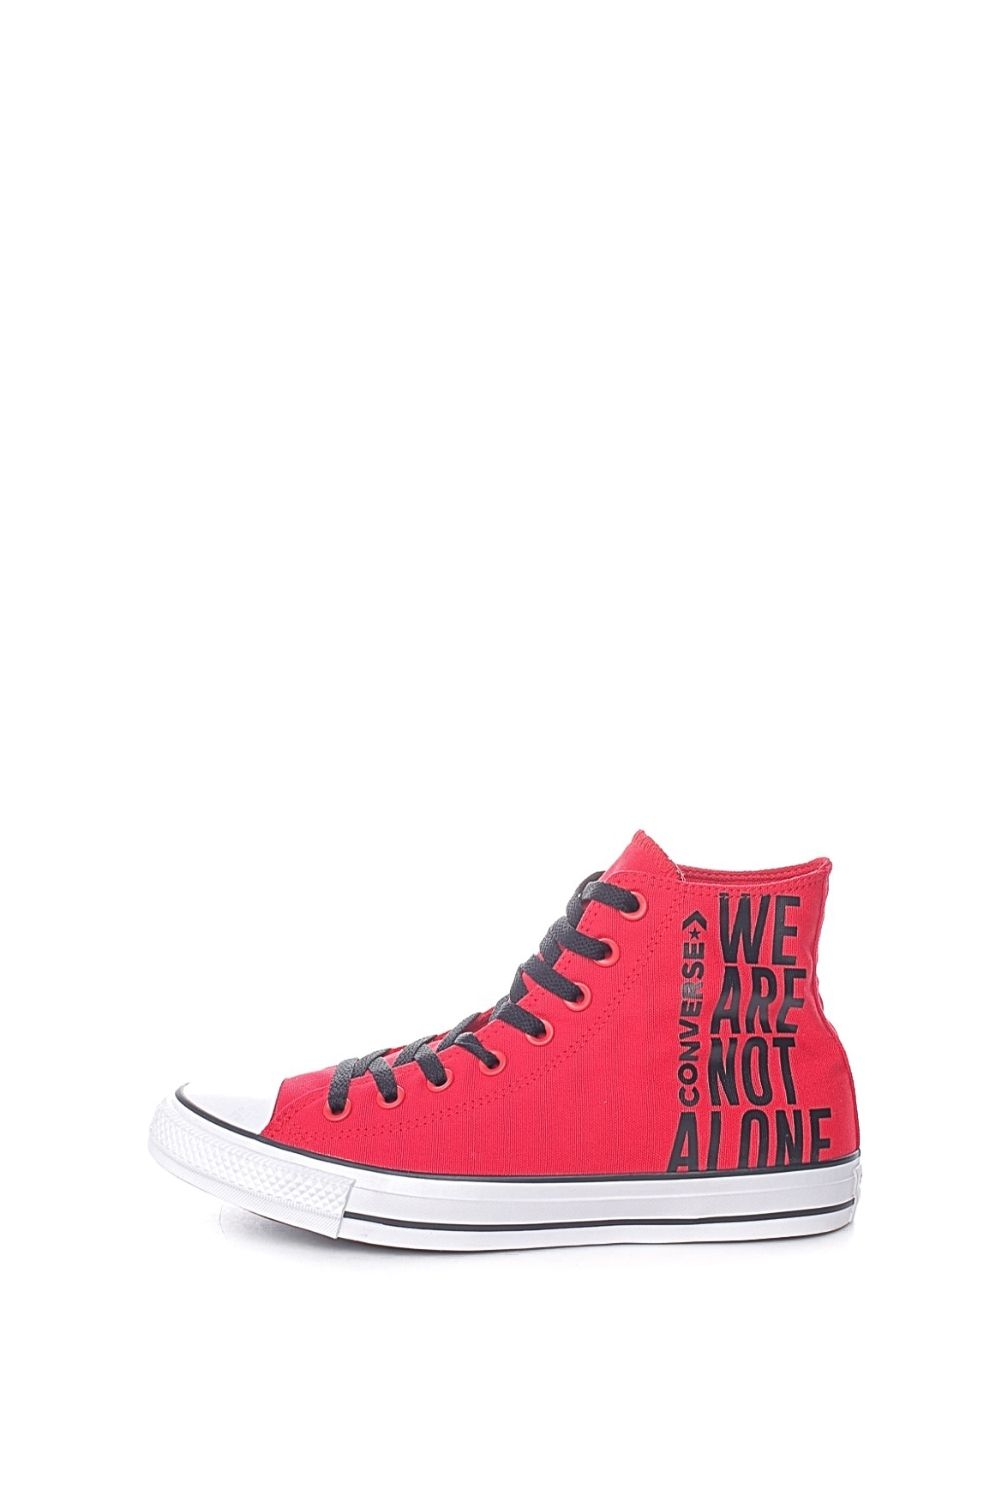 CONVERSE – Unisex sneakers μποτάκια CONVERSE Chuck Taylor All Star κόκκινα